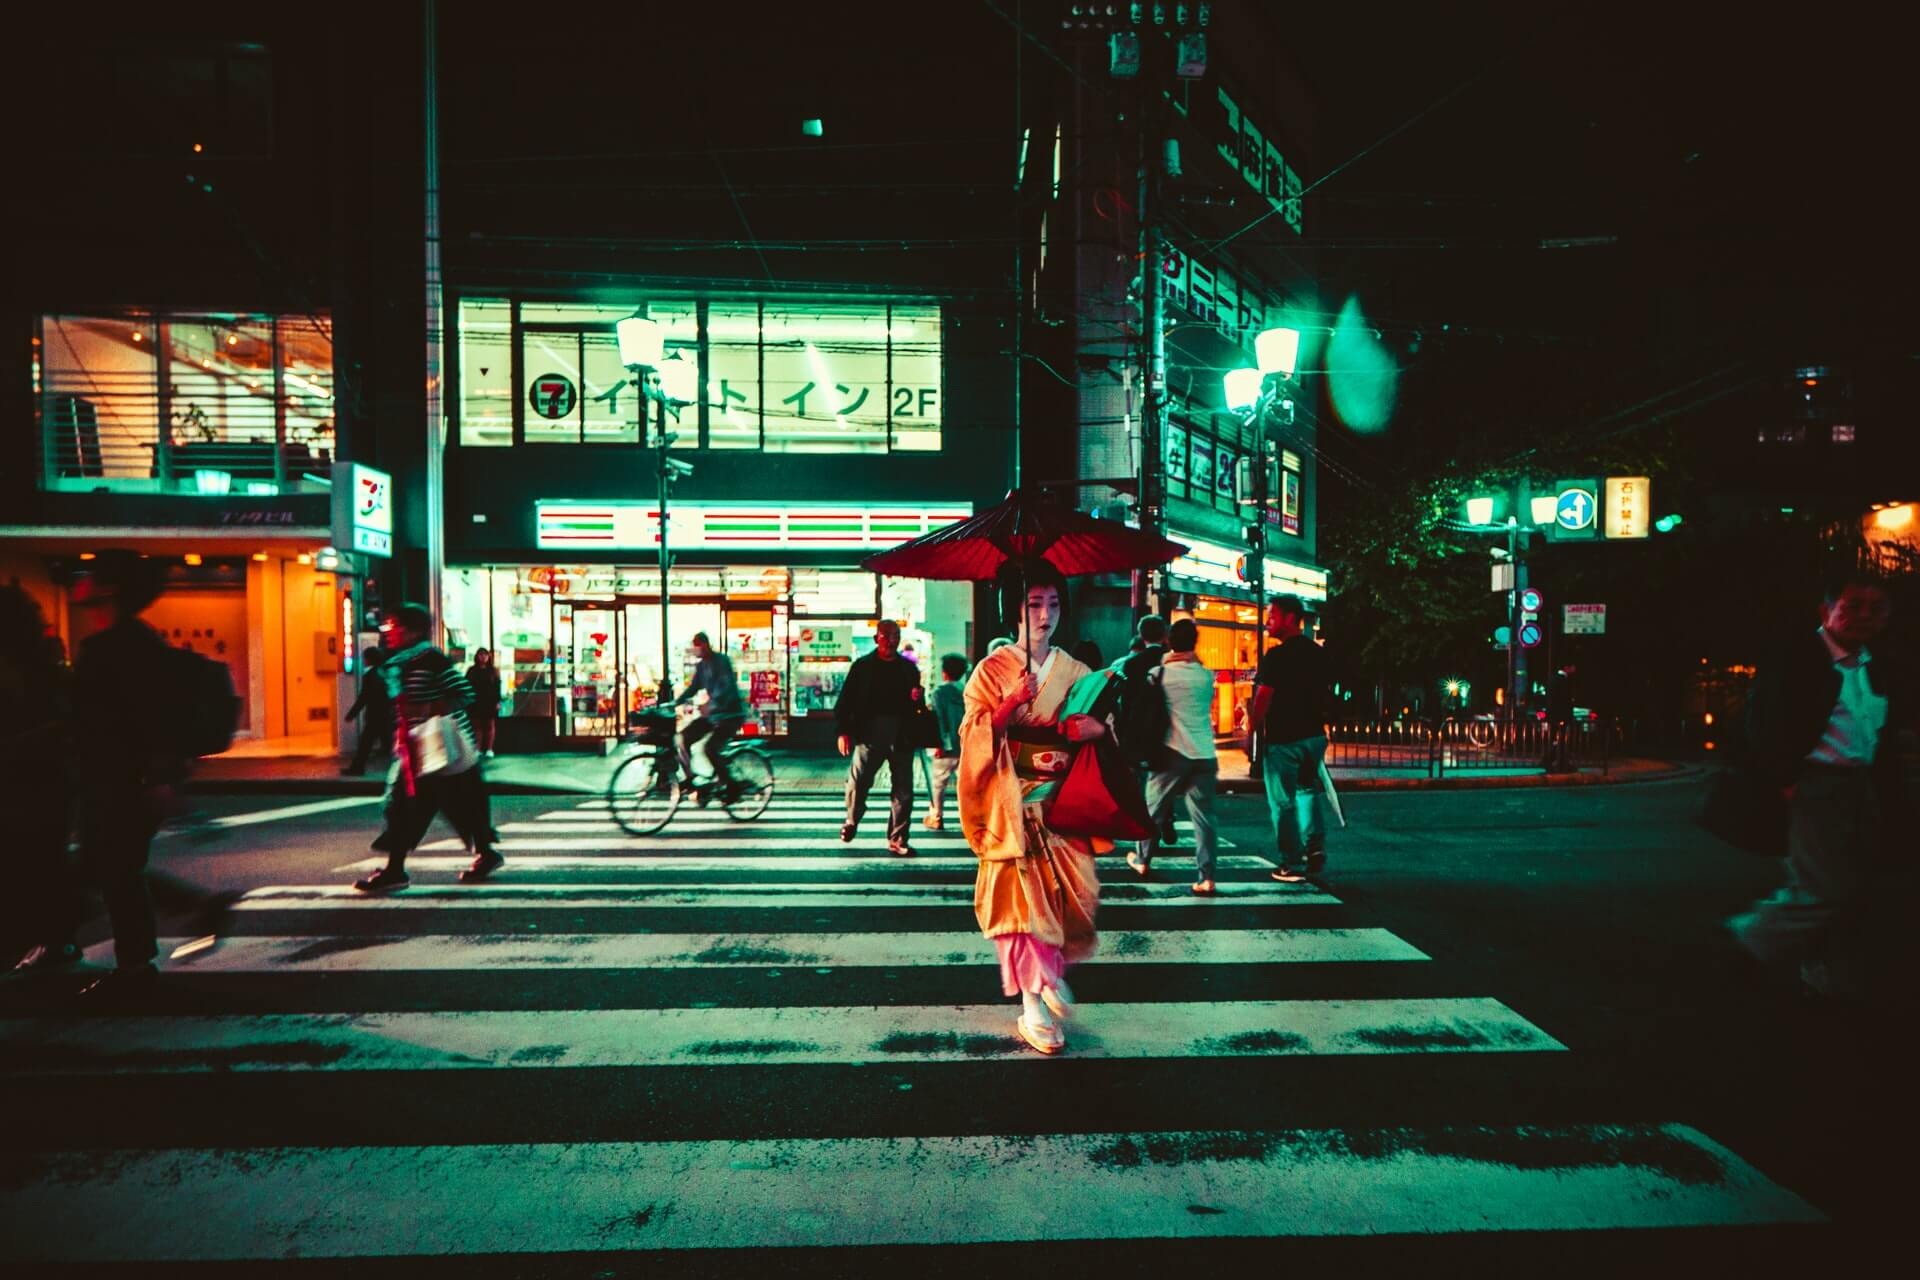 A geish in Kyoto crosses that street at night in front of a konbini